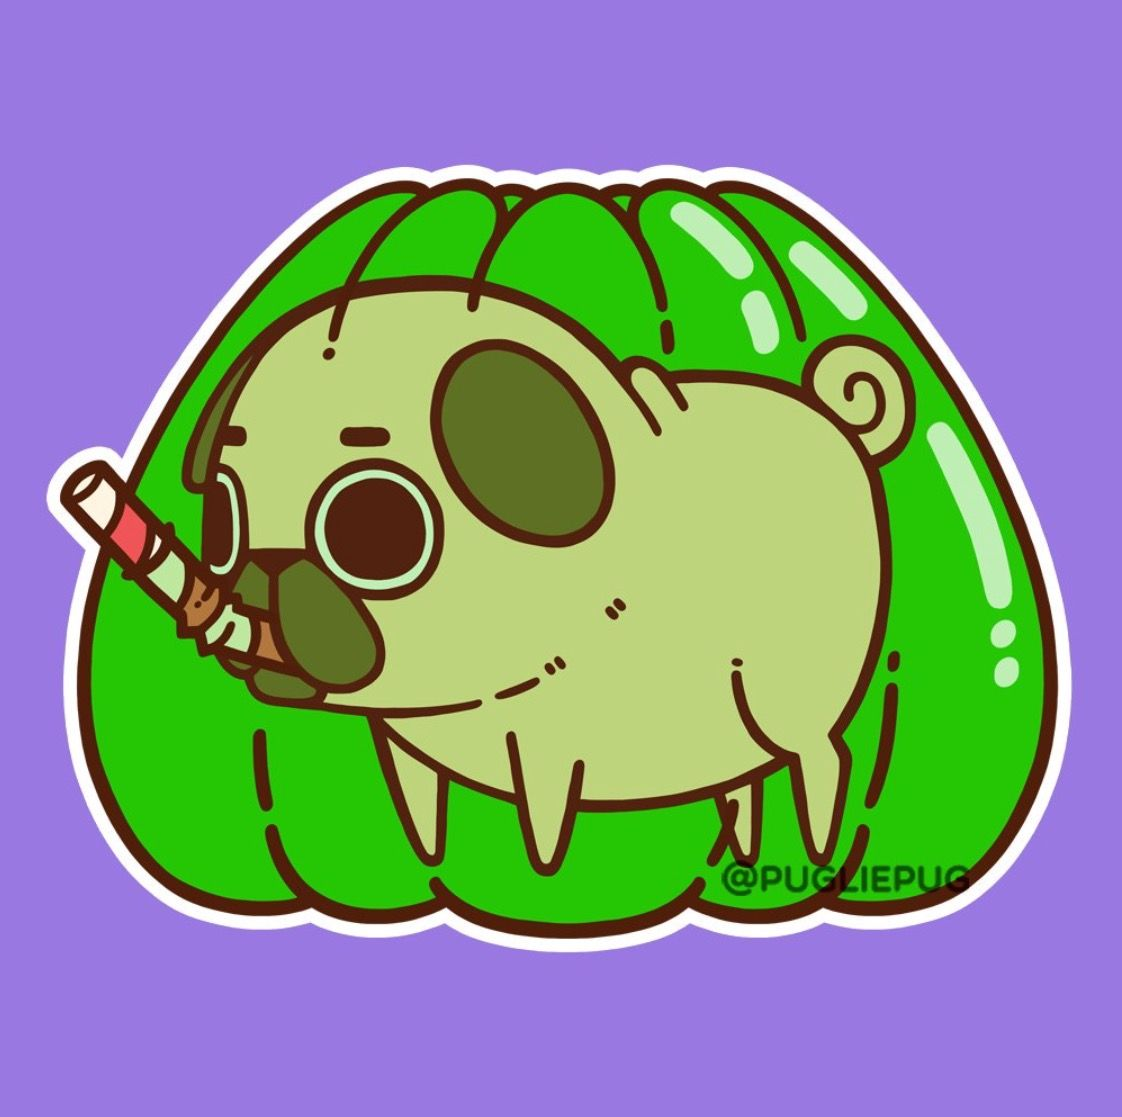 Pin by nallely aguilar on puglie pug pinterest